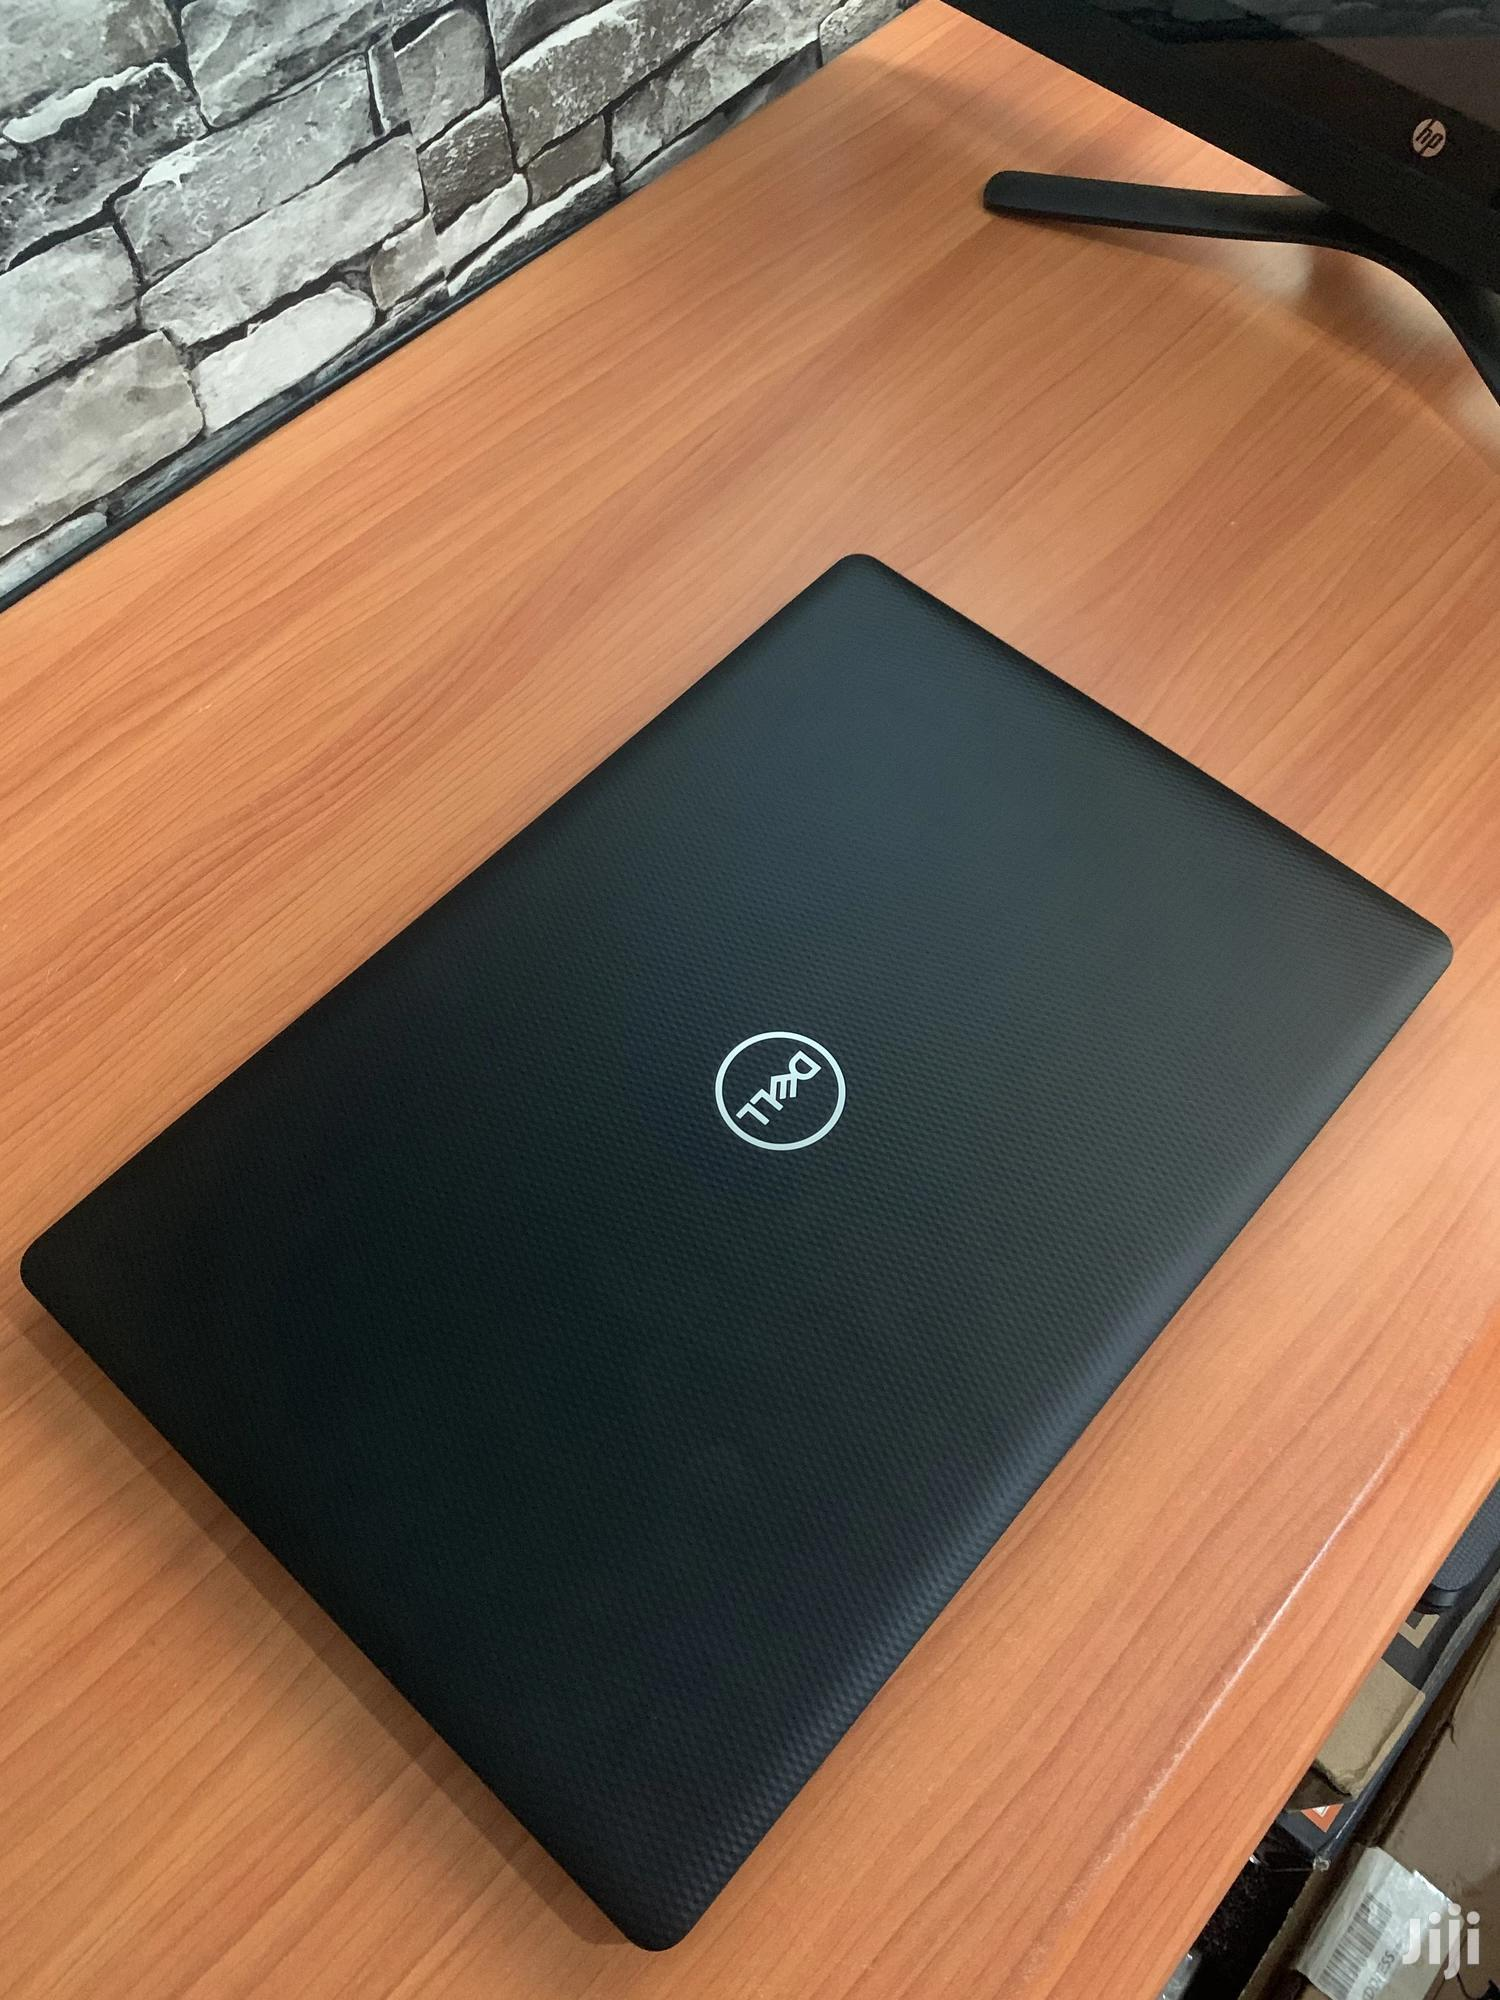 Laptop Dell Inspiron 15 3593 8GB Intel Core I7 HDD 1T   Laptops & Computers for sale in Osu, Greater Accra, Ghana